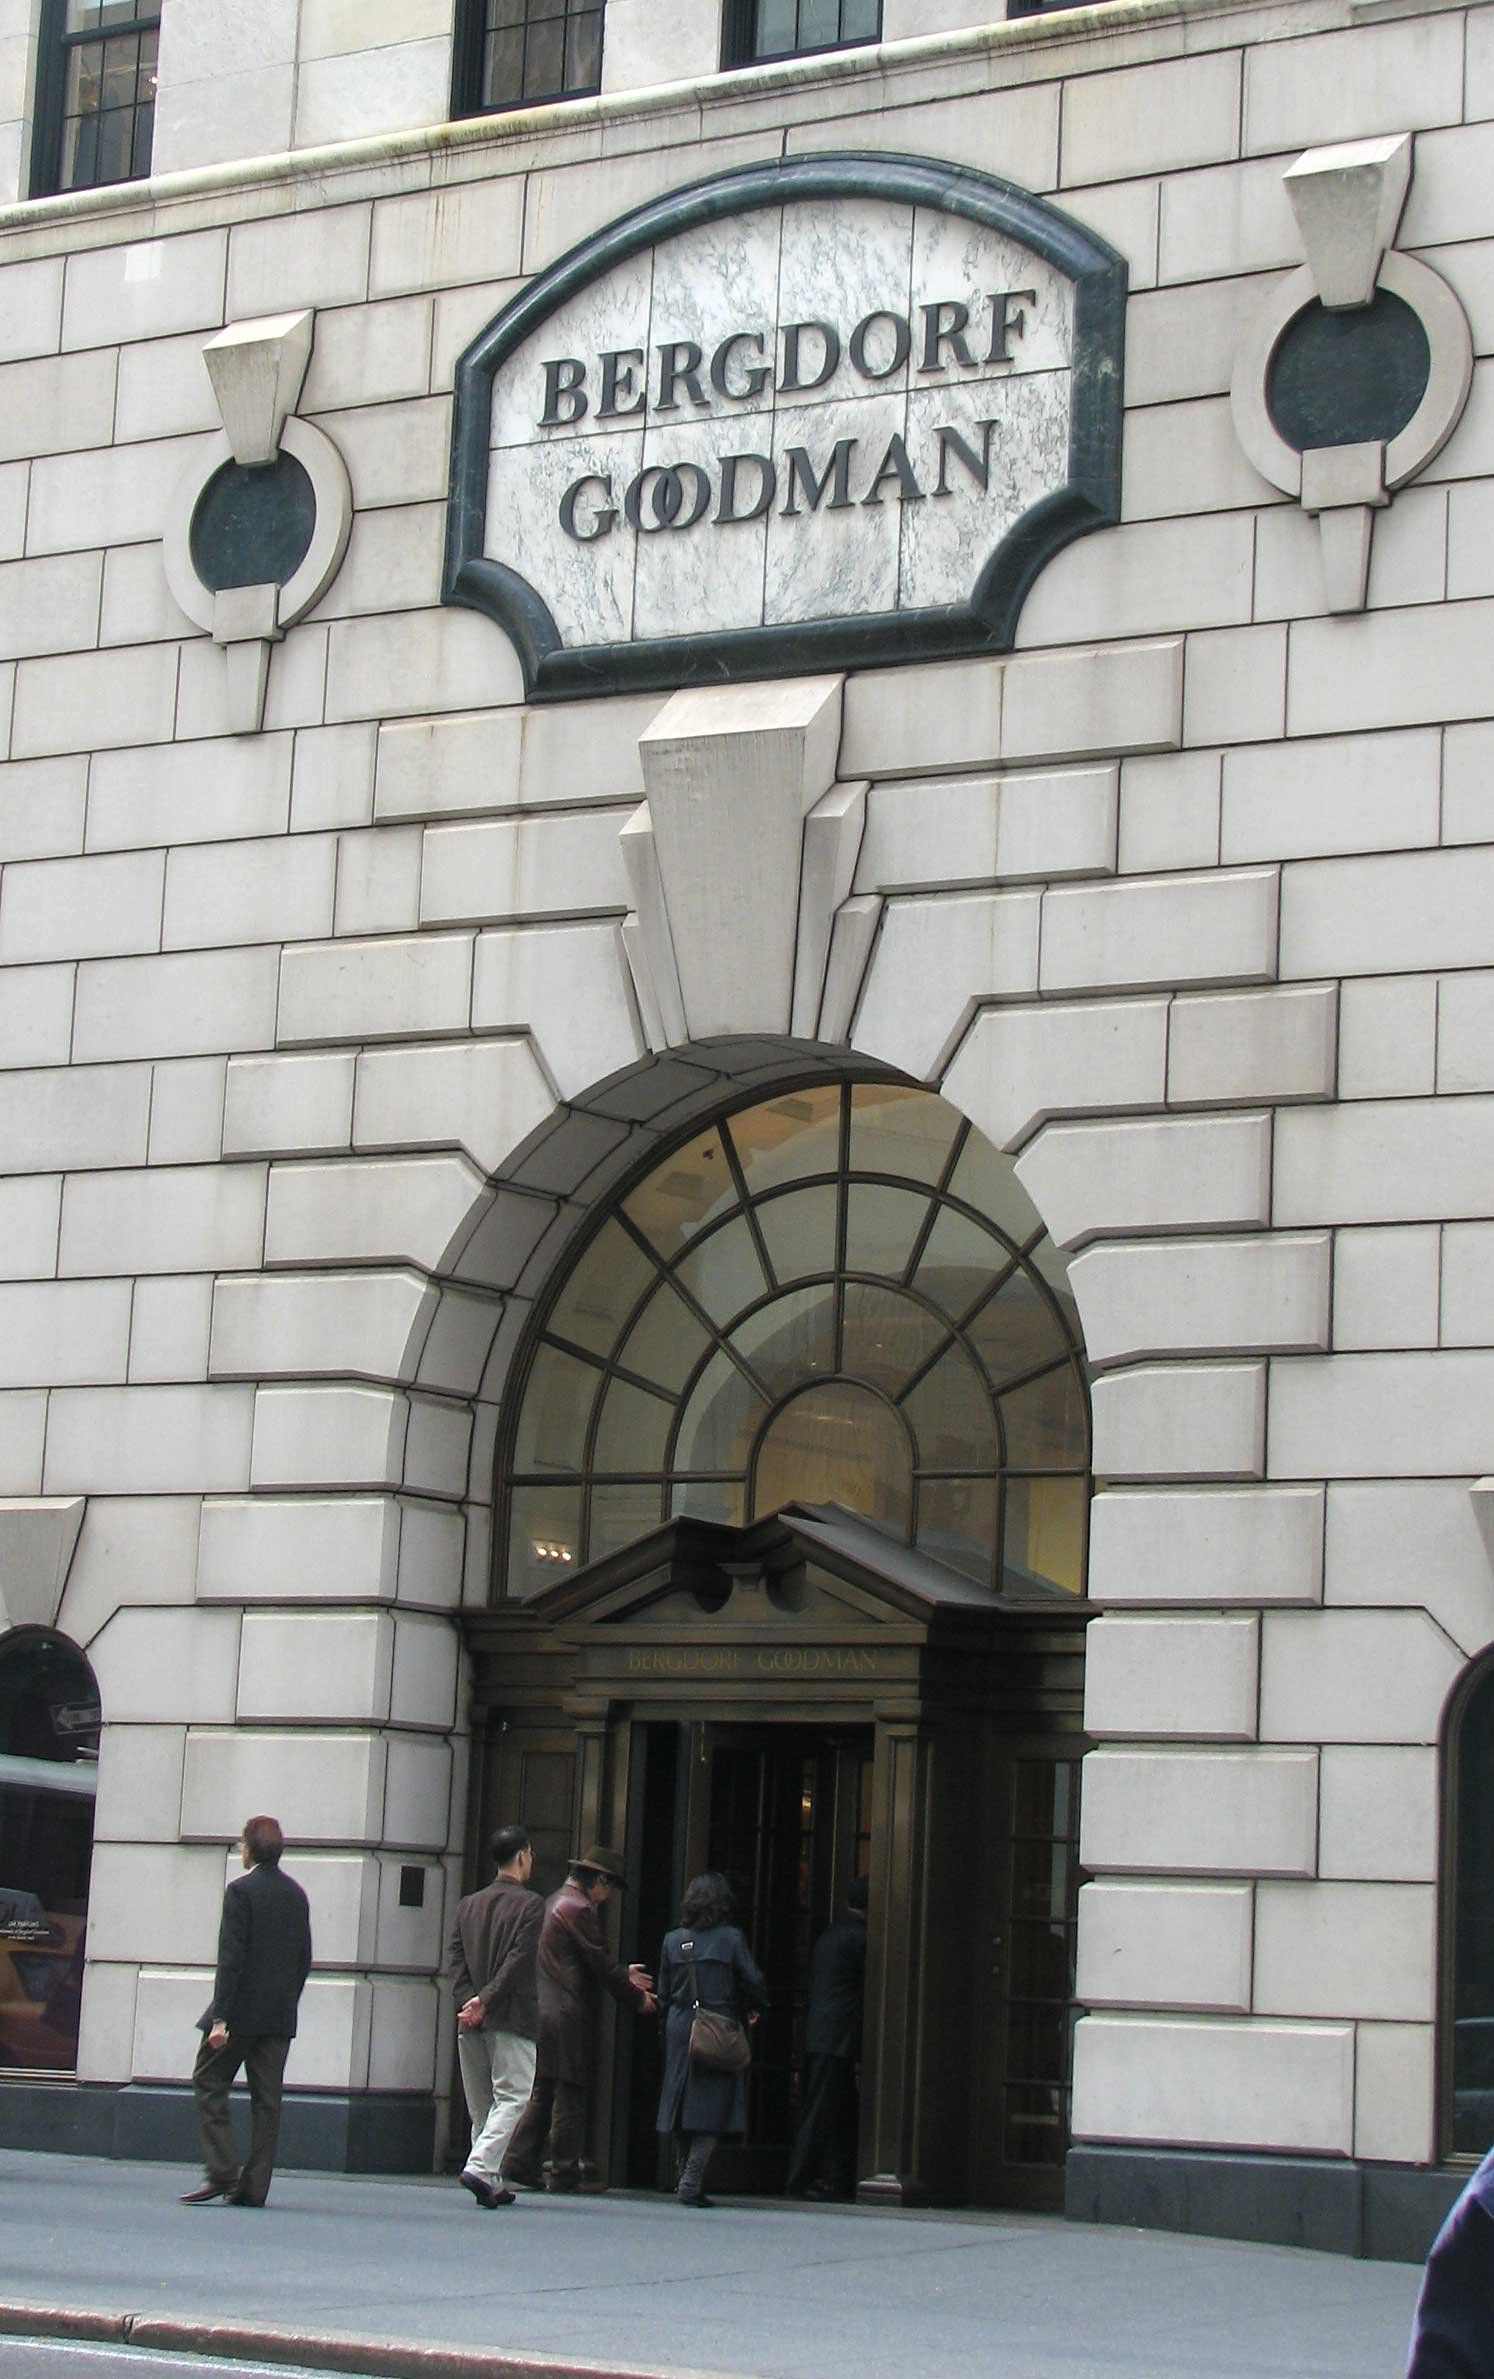 Bergdorf Goodman on Pinterest Ruthie Davis, Giuseppe